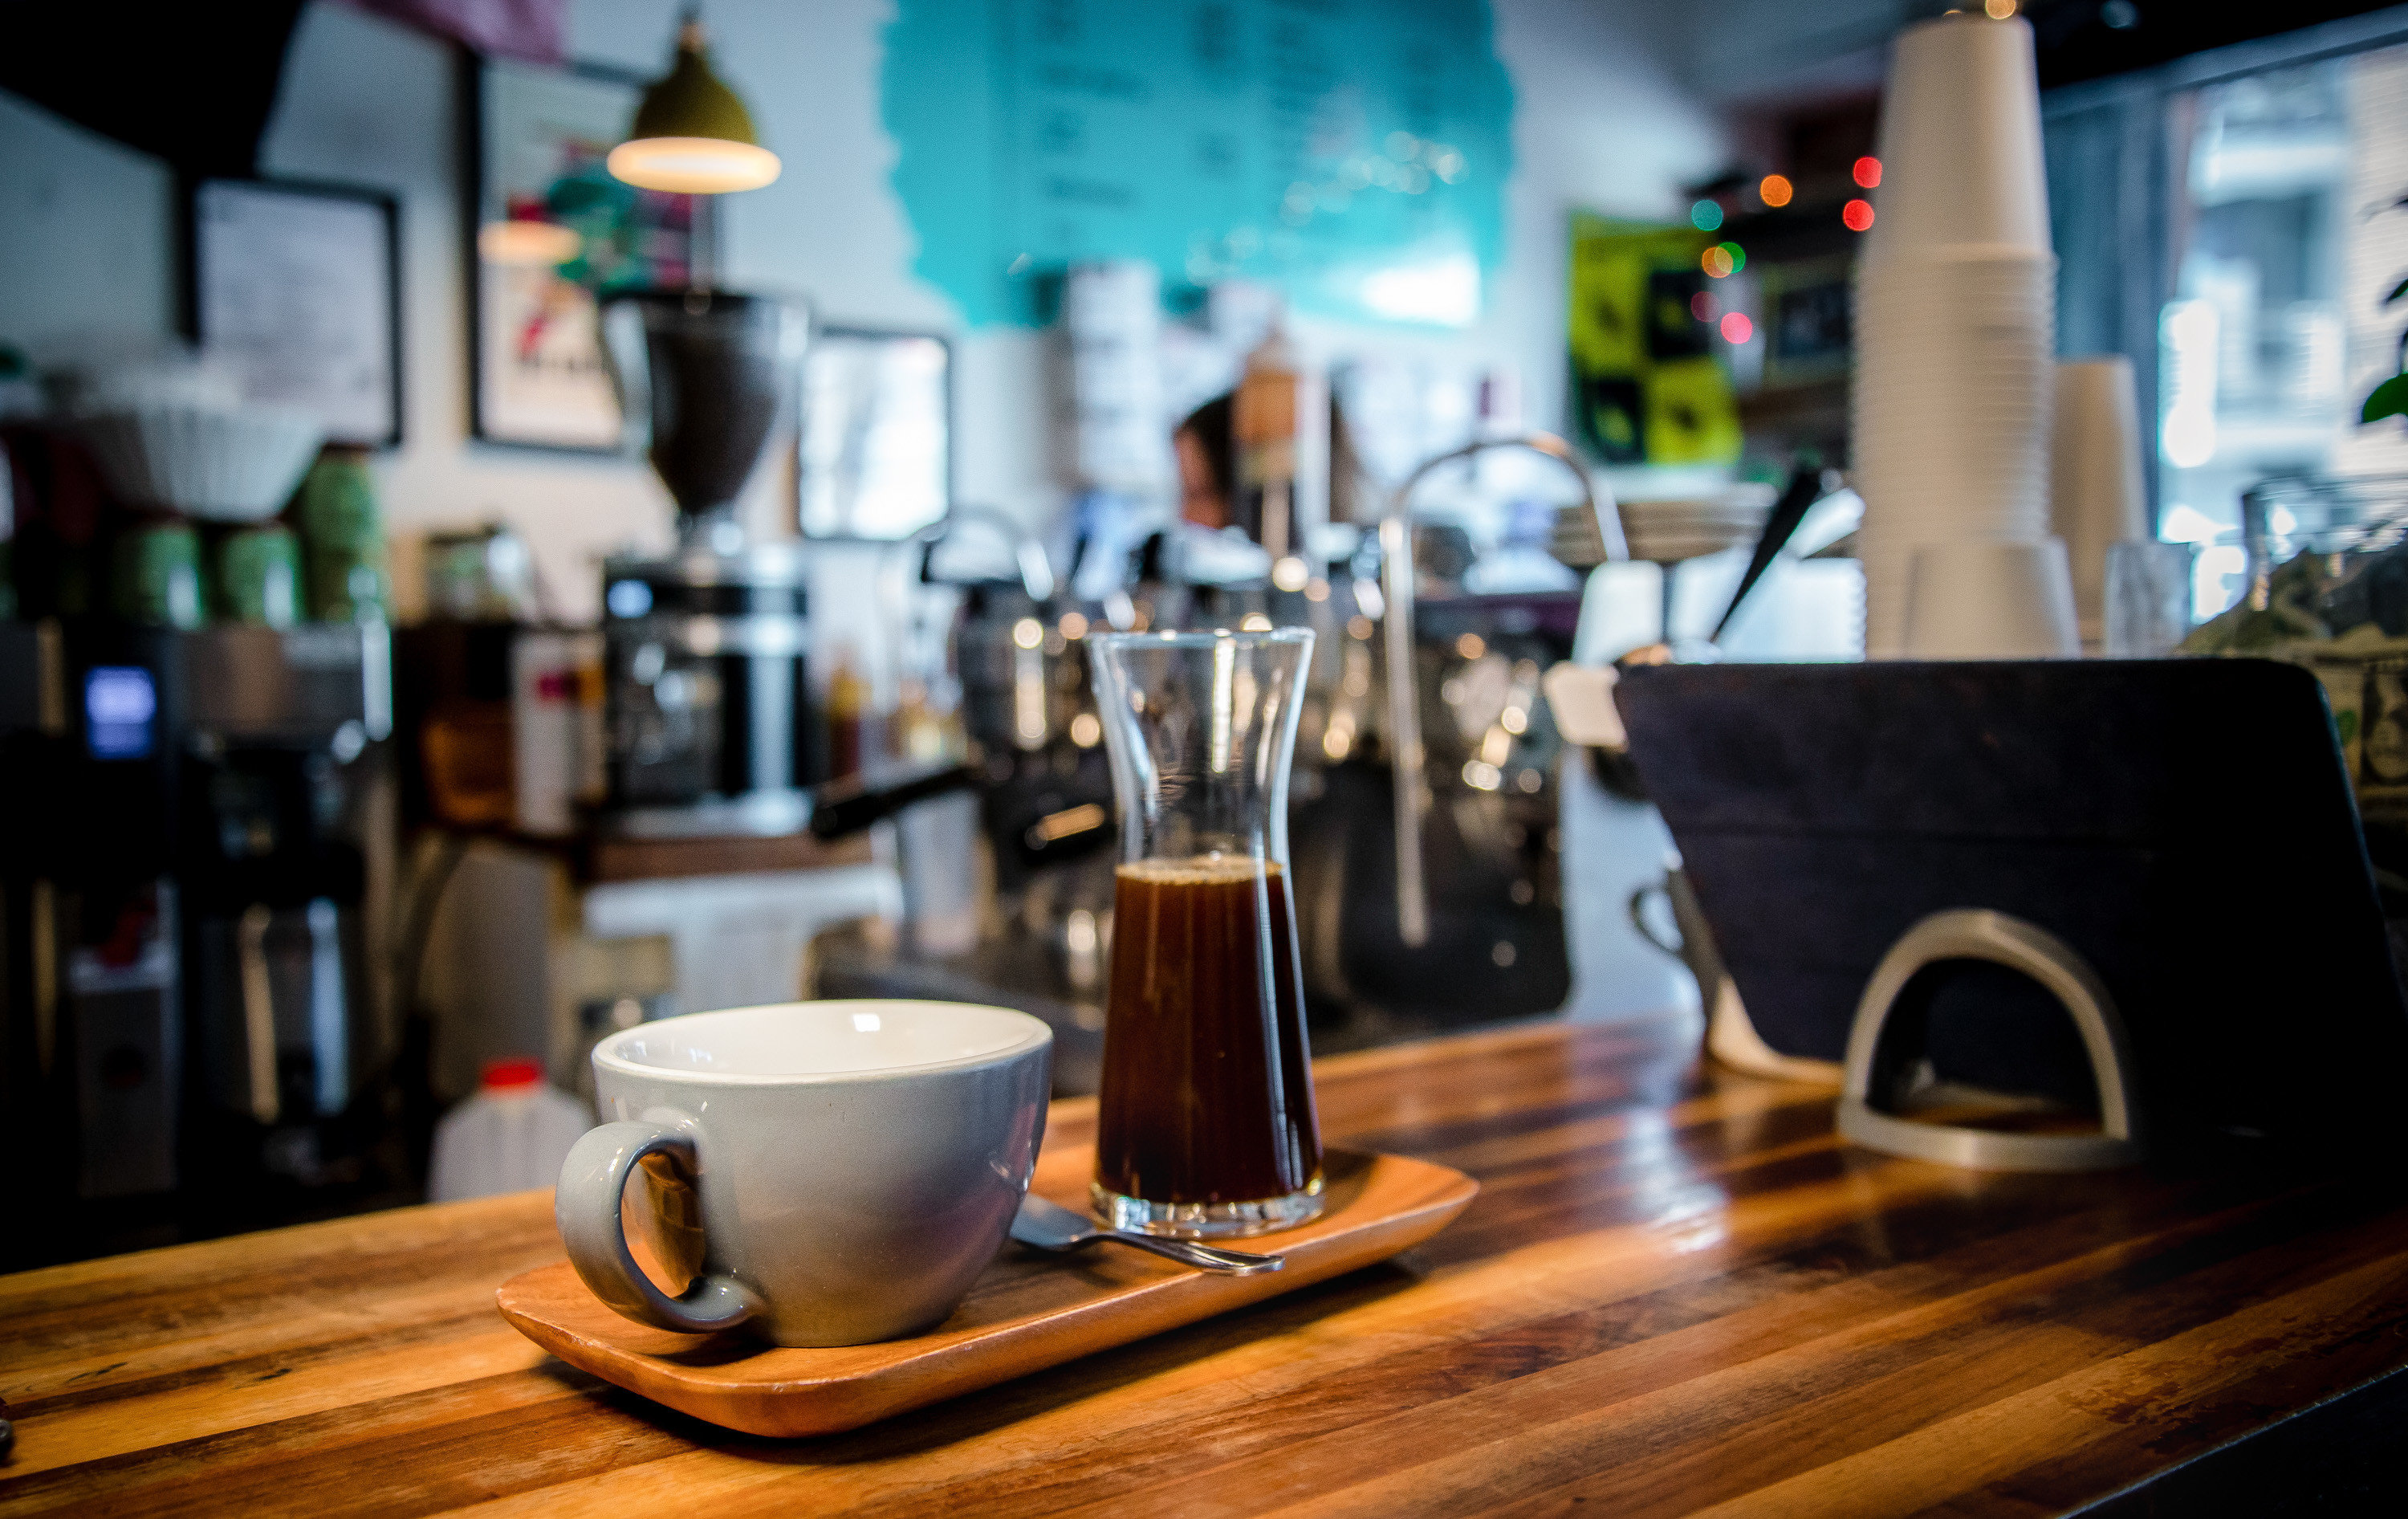 Brooklyn City Food + Drink NYC table indoor Drink cup alcoholic beverage Bar liqueur café beer coffeehouse wooden distilled beverage restaurant counter cluttered